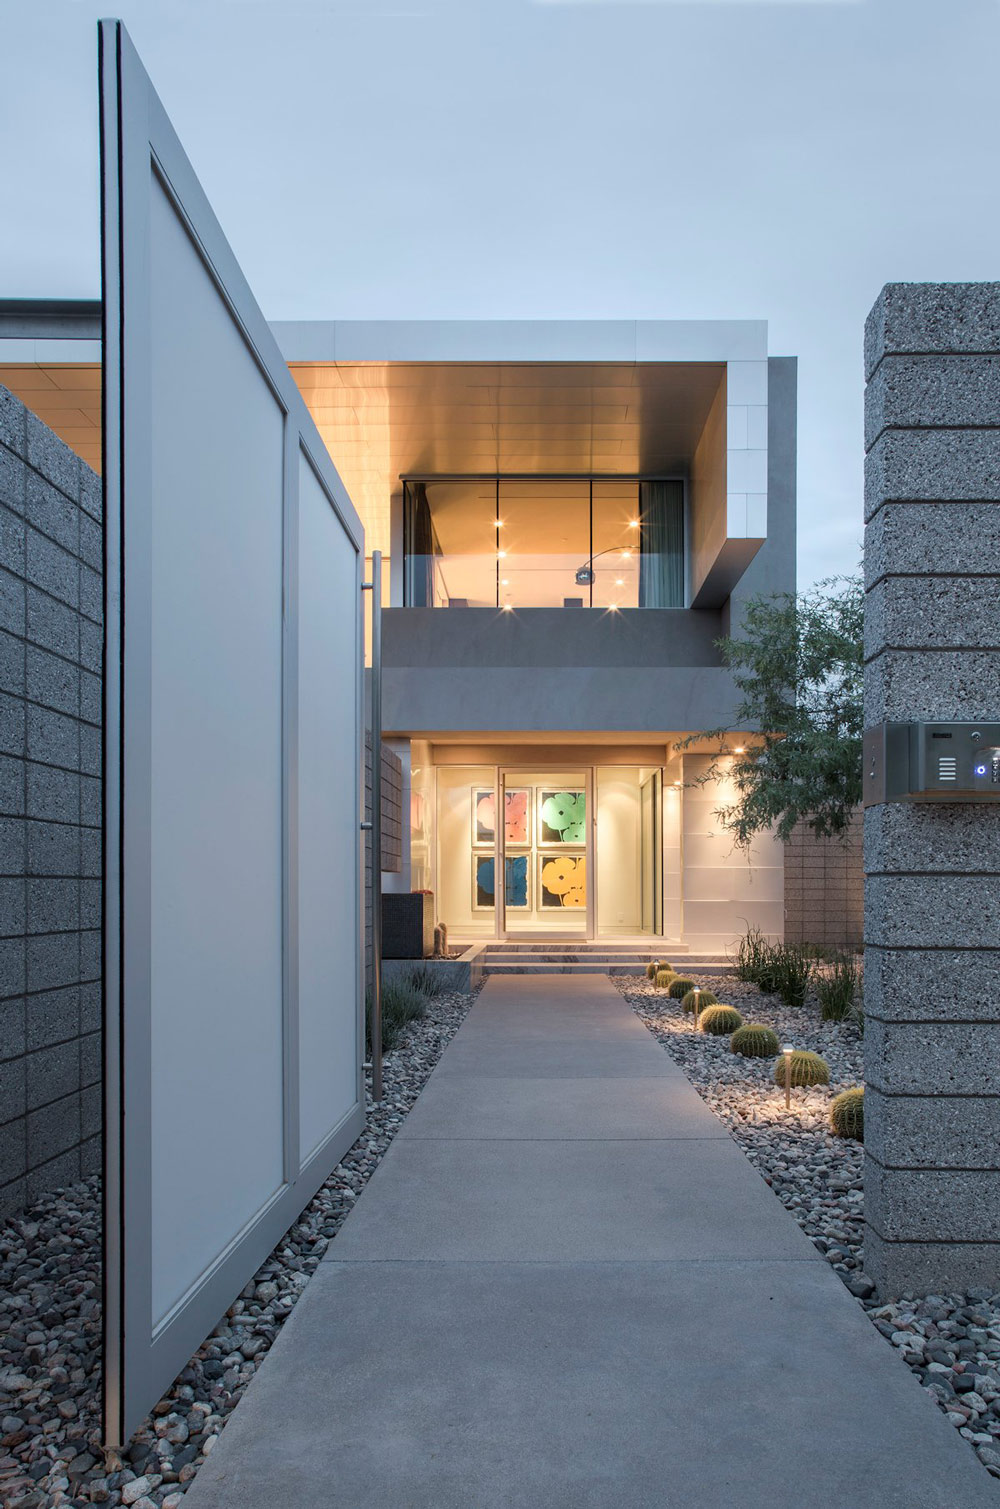 Glass Entrance, Pathway, Mid-Century Modern Home in Scottsdale, Arizona